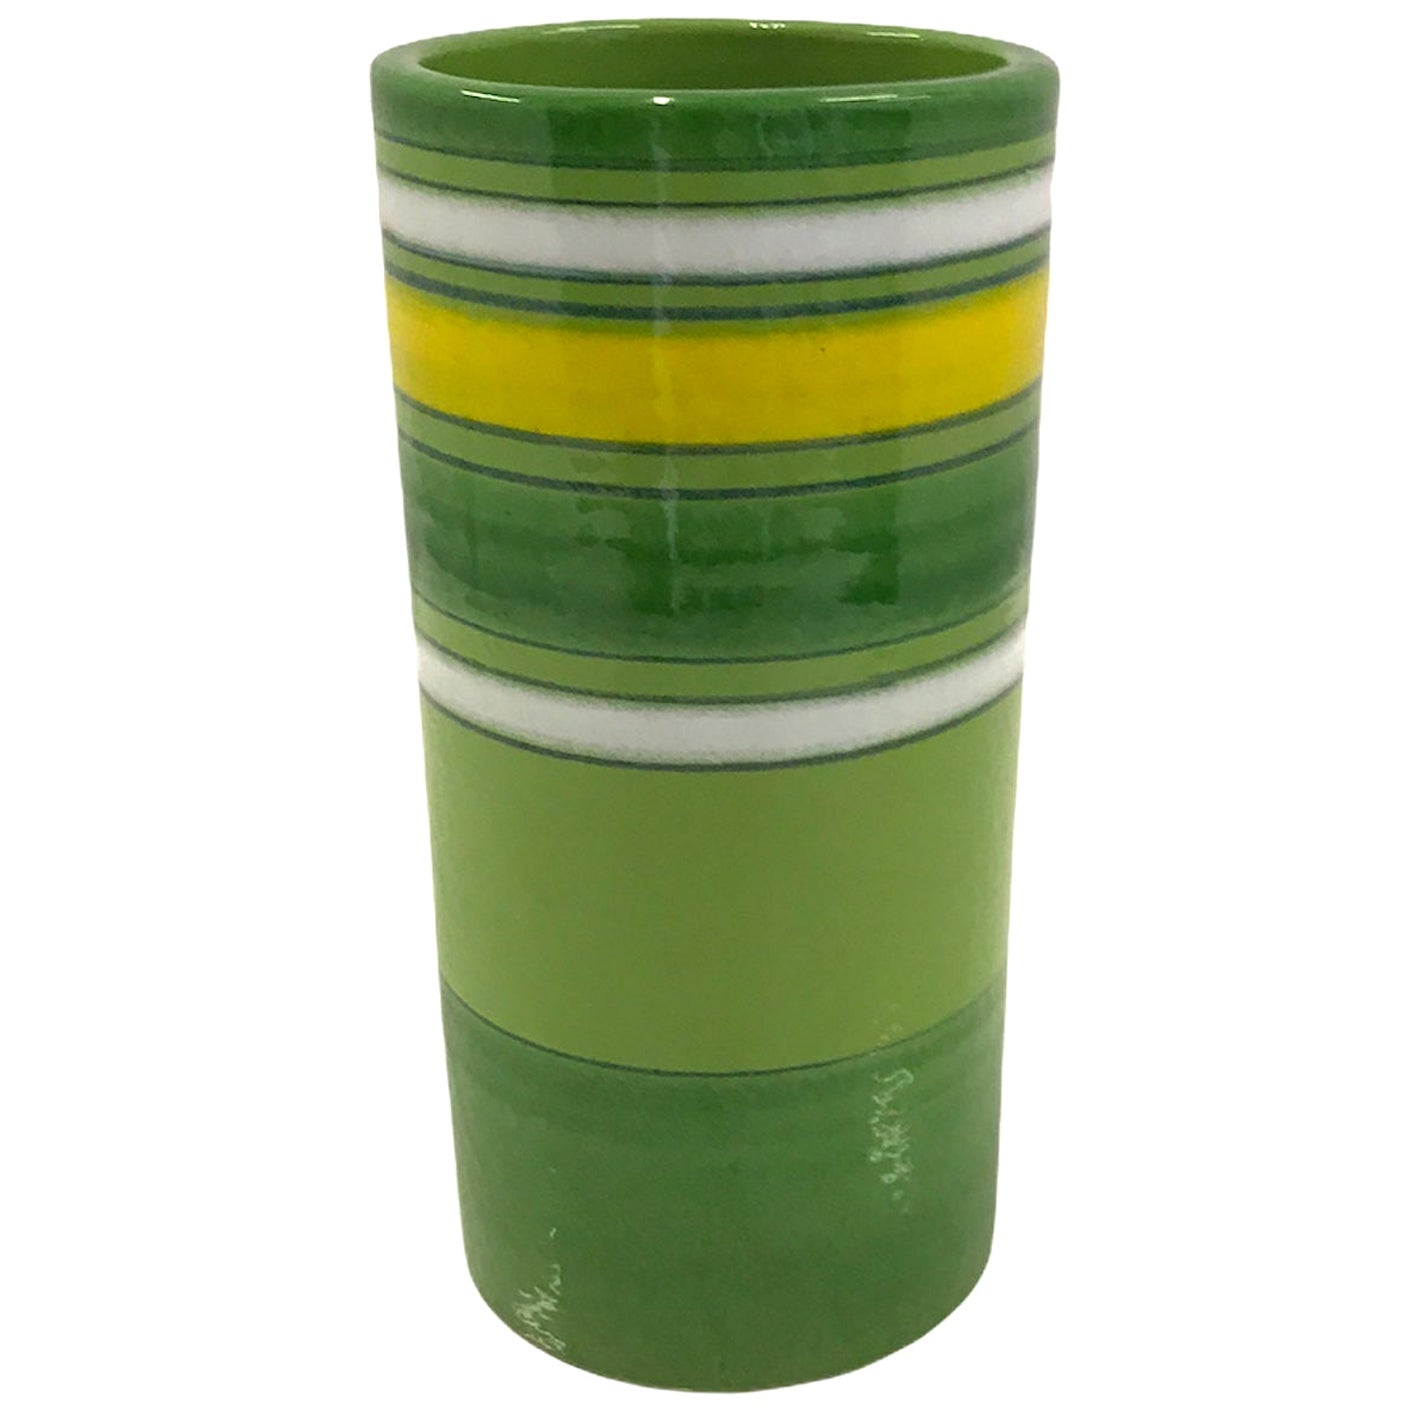 Aldo Londi Bitossi Fascie Colorate Green Cylindrical Vase Rosenthal Netter 70s